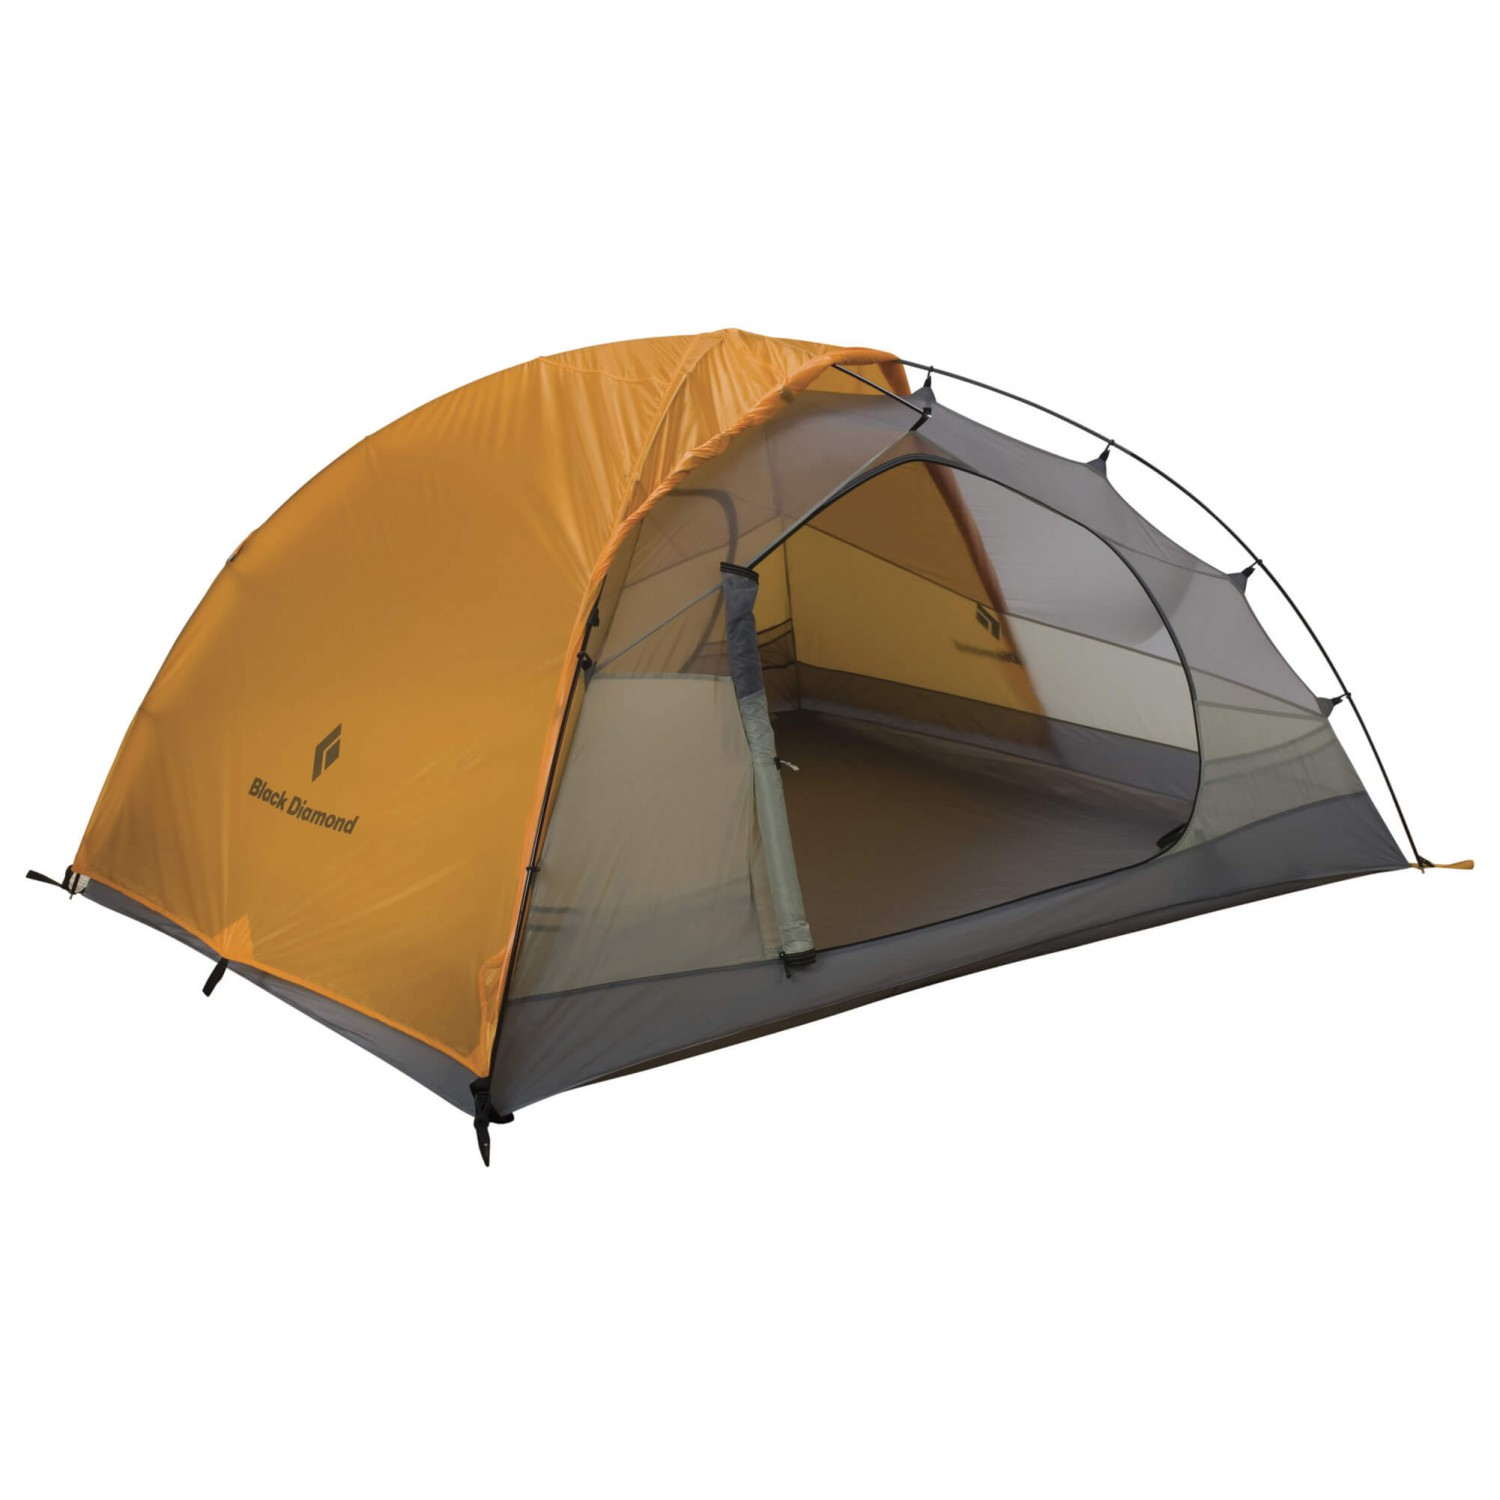 ... Black Diamond - Vista - 3 Personenzelt ...  sc 1 st  Bergfreunde : black diamond tents uk - memphite.com